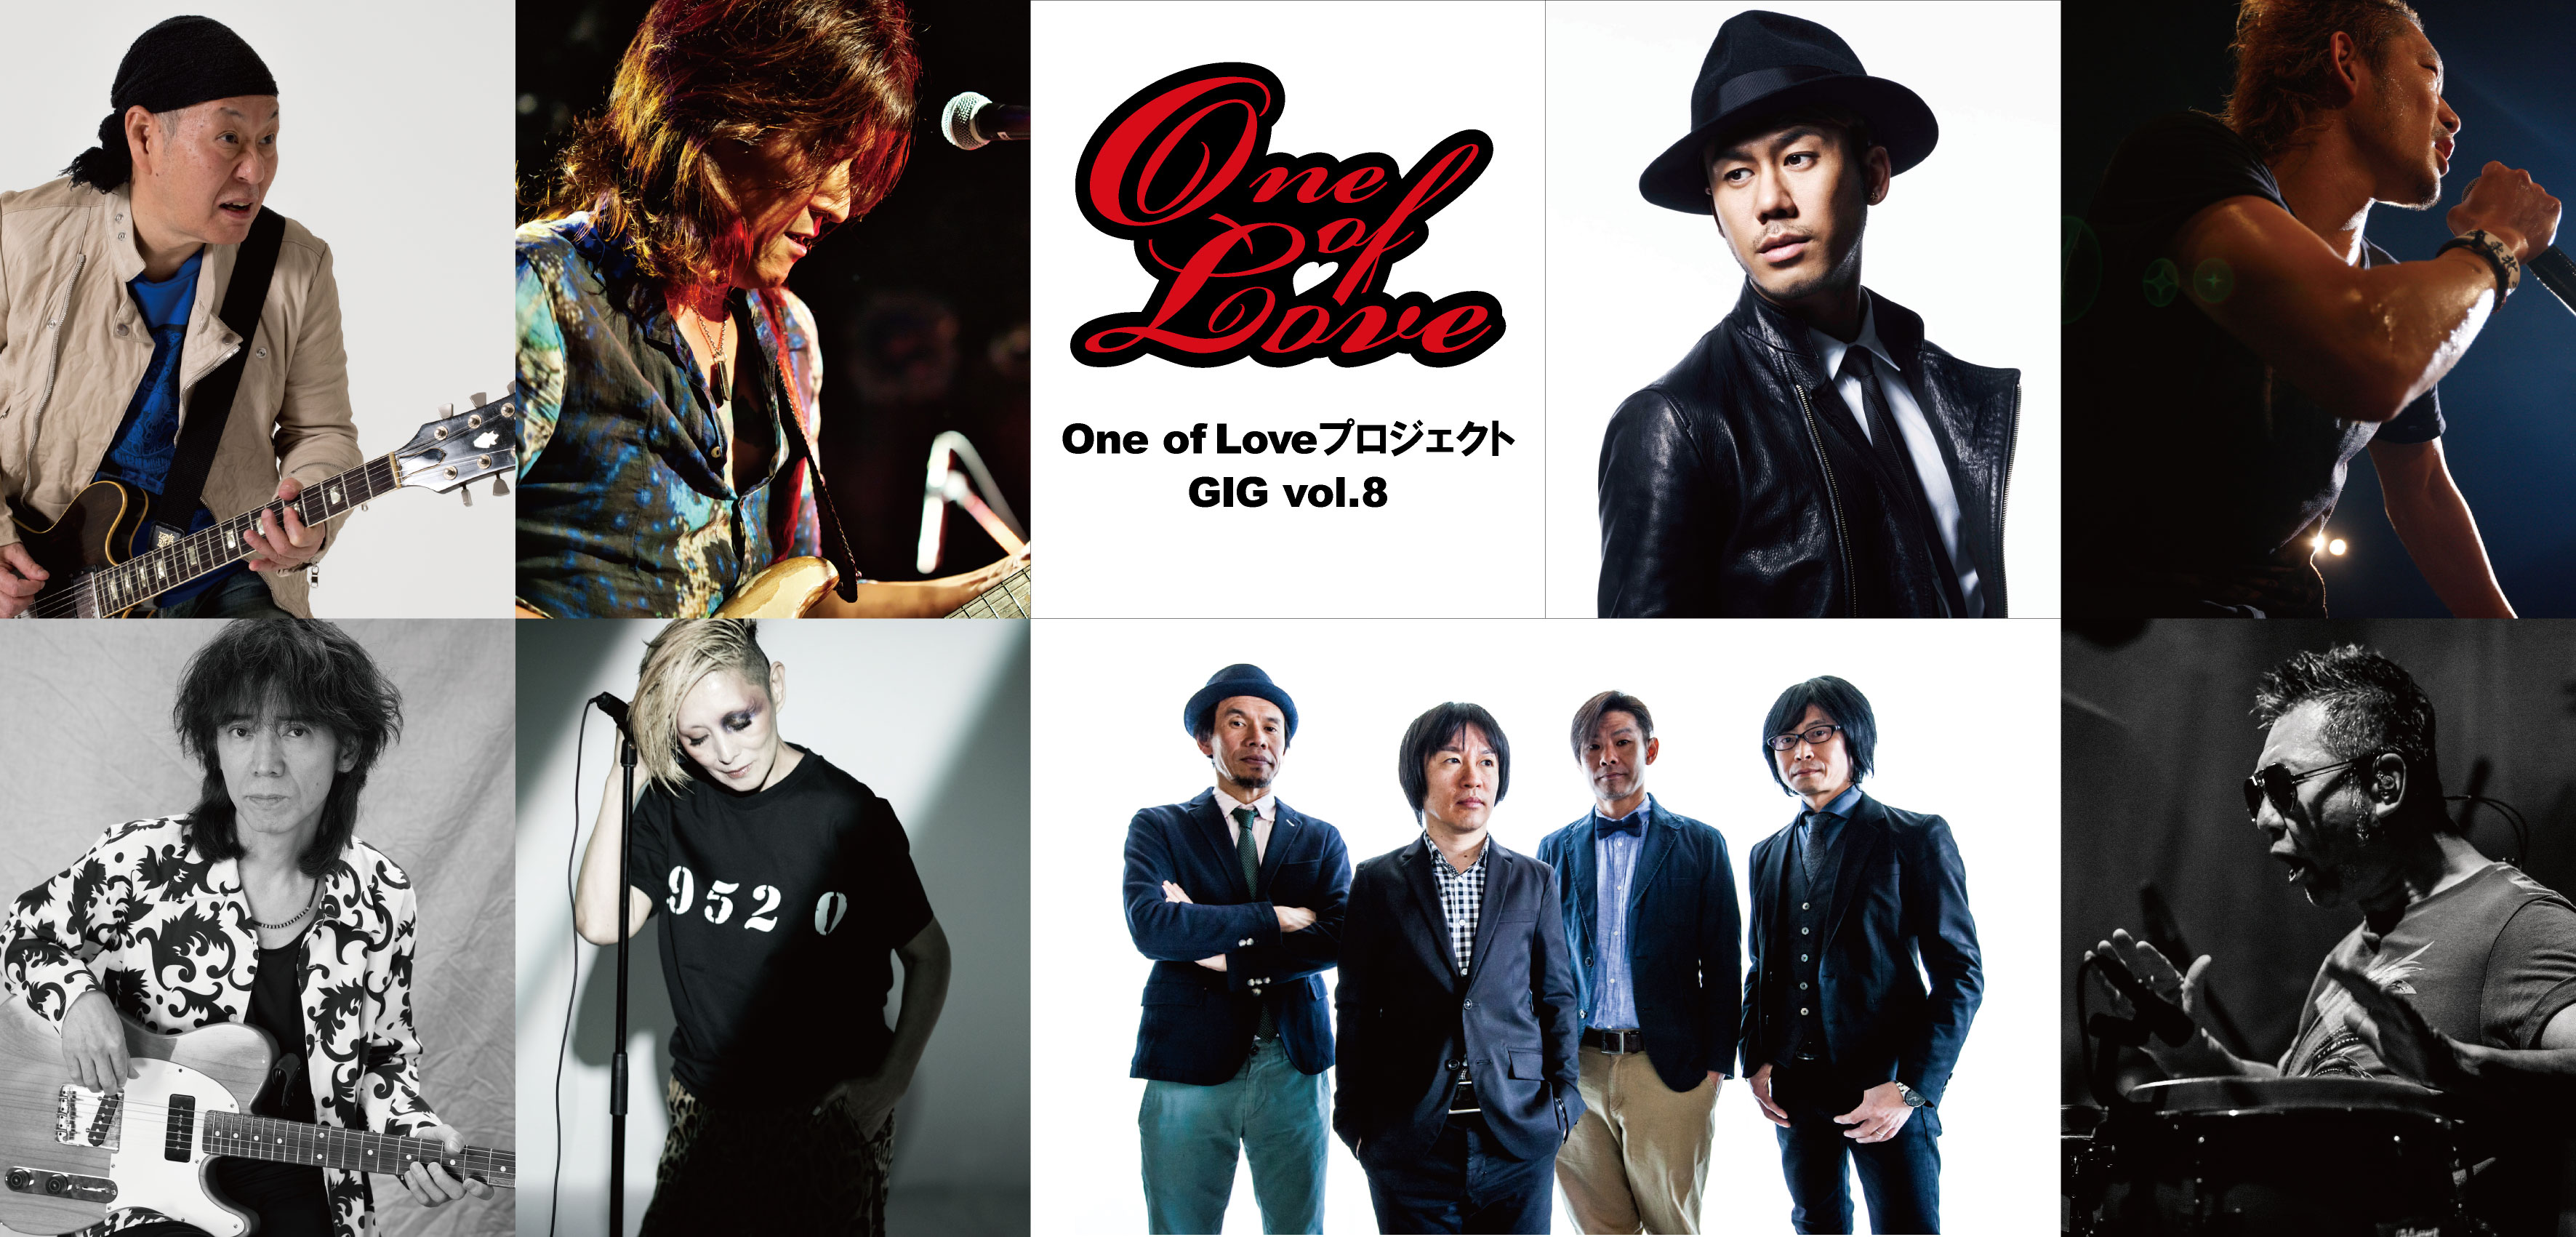 One of Love vol.8